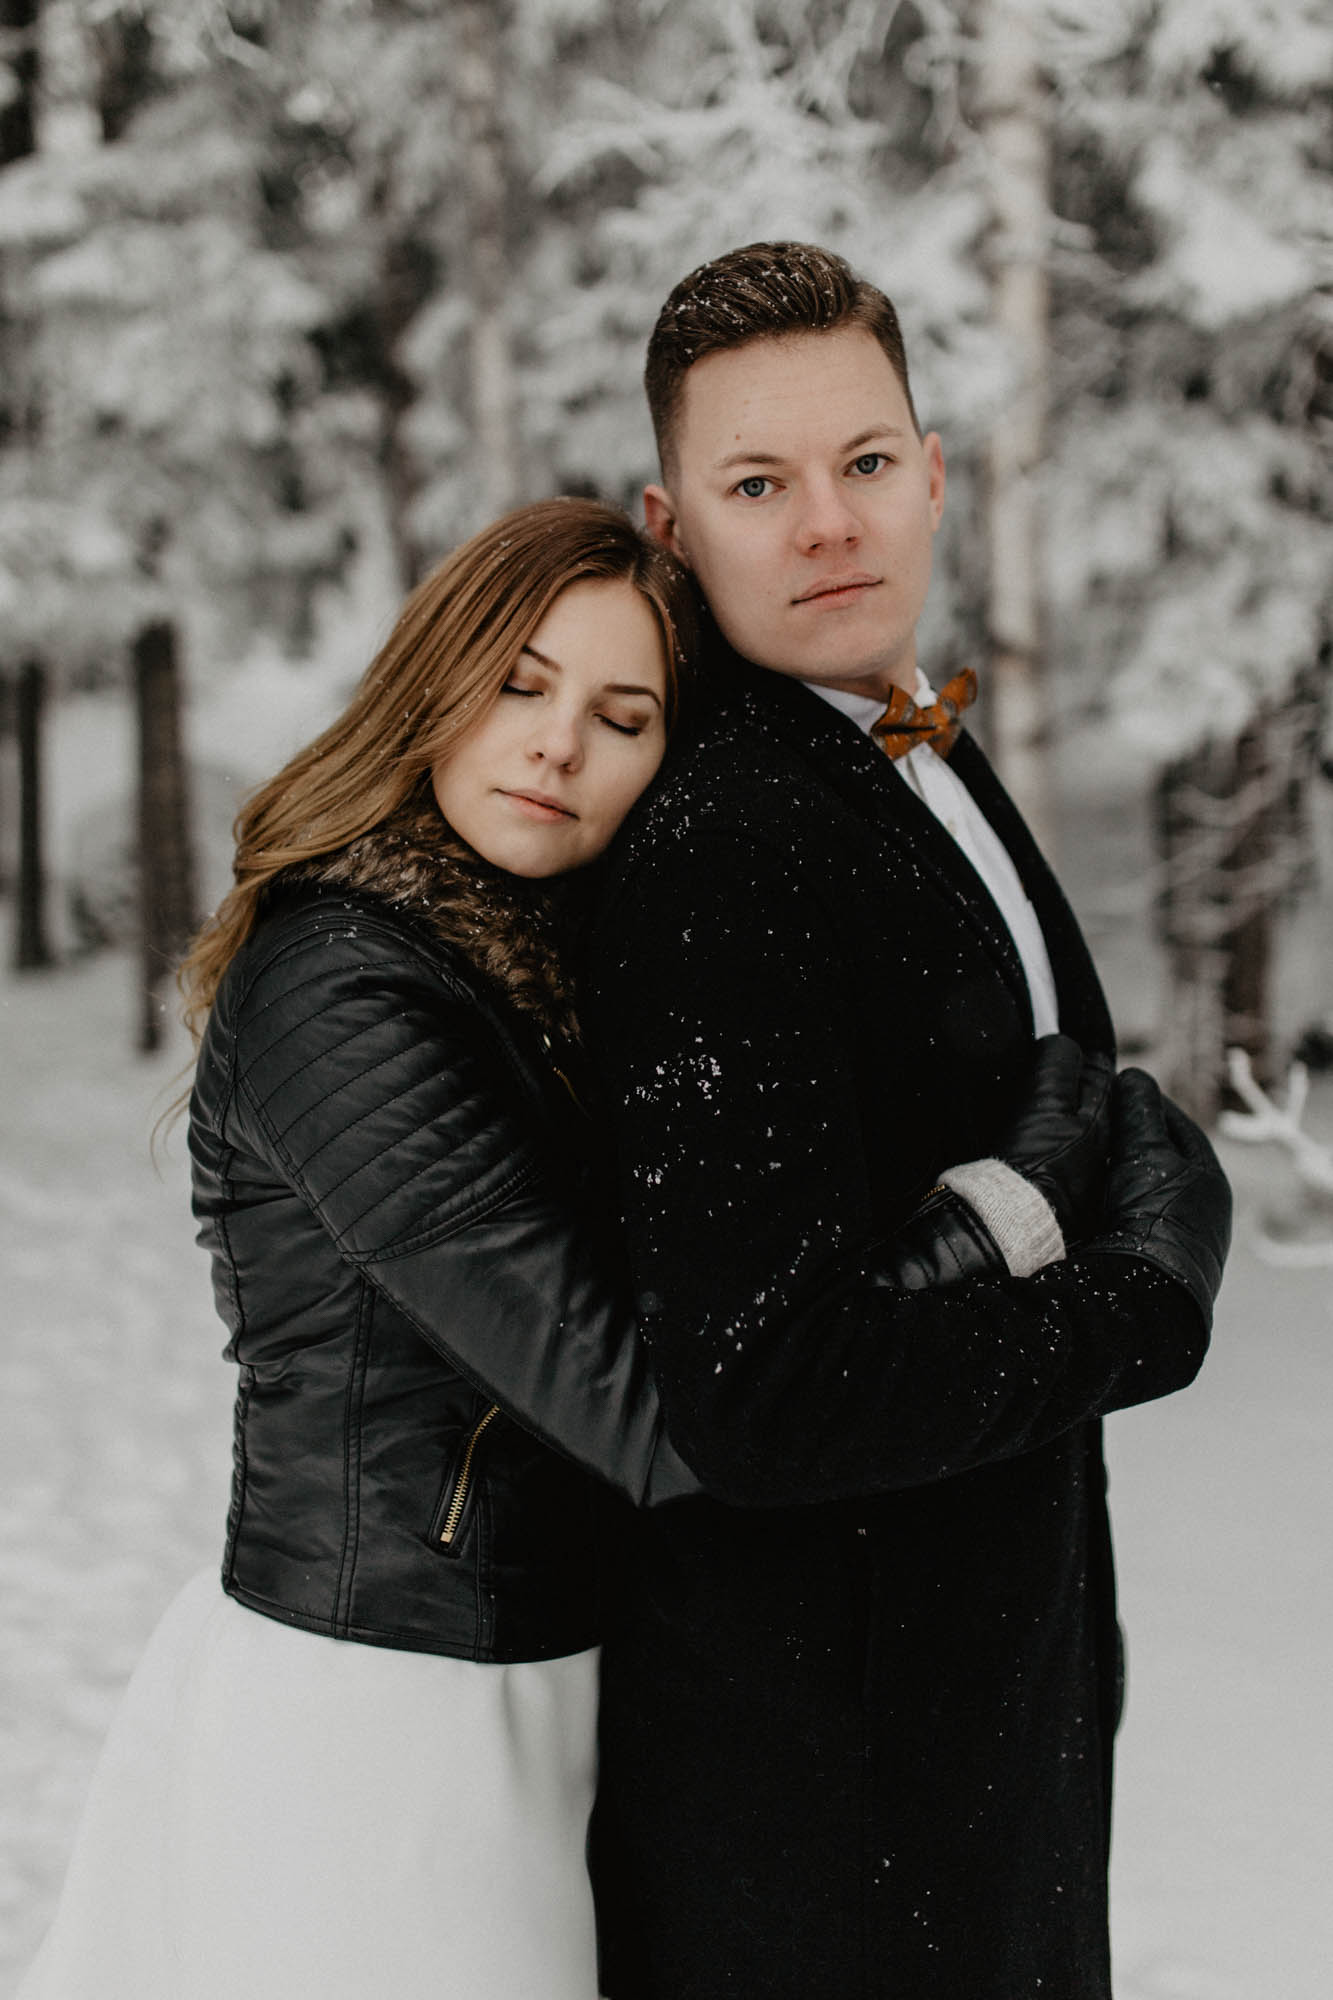 ashley_schulman_photography-winter_wedding_tampere-41.jpg